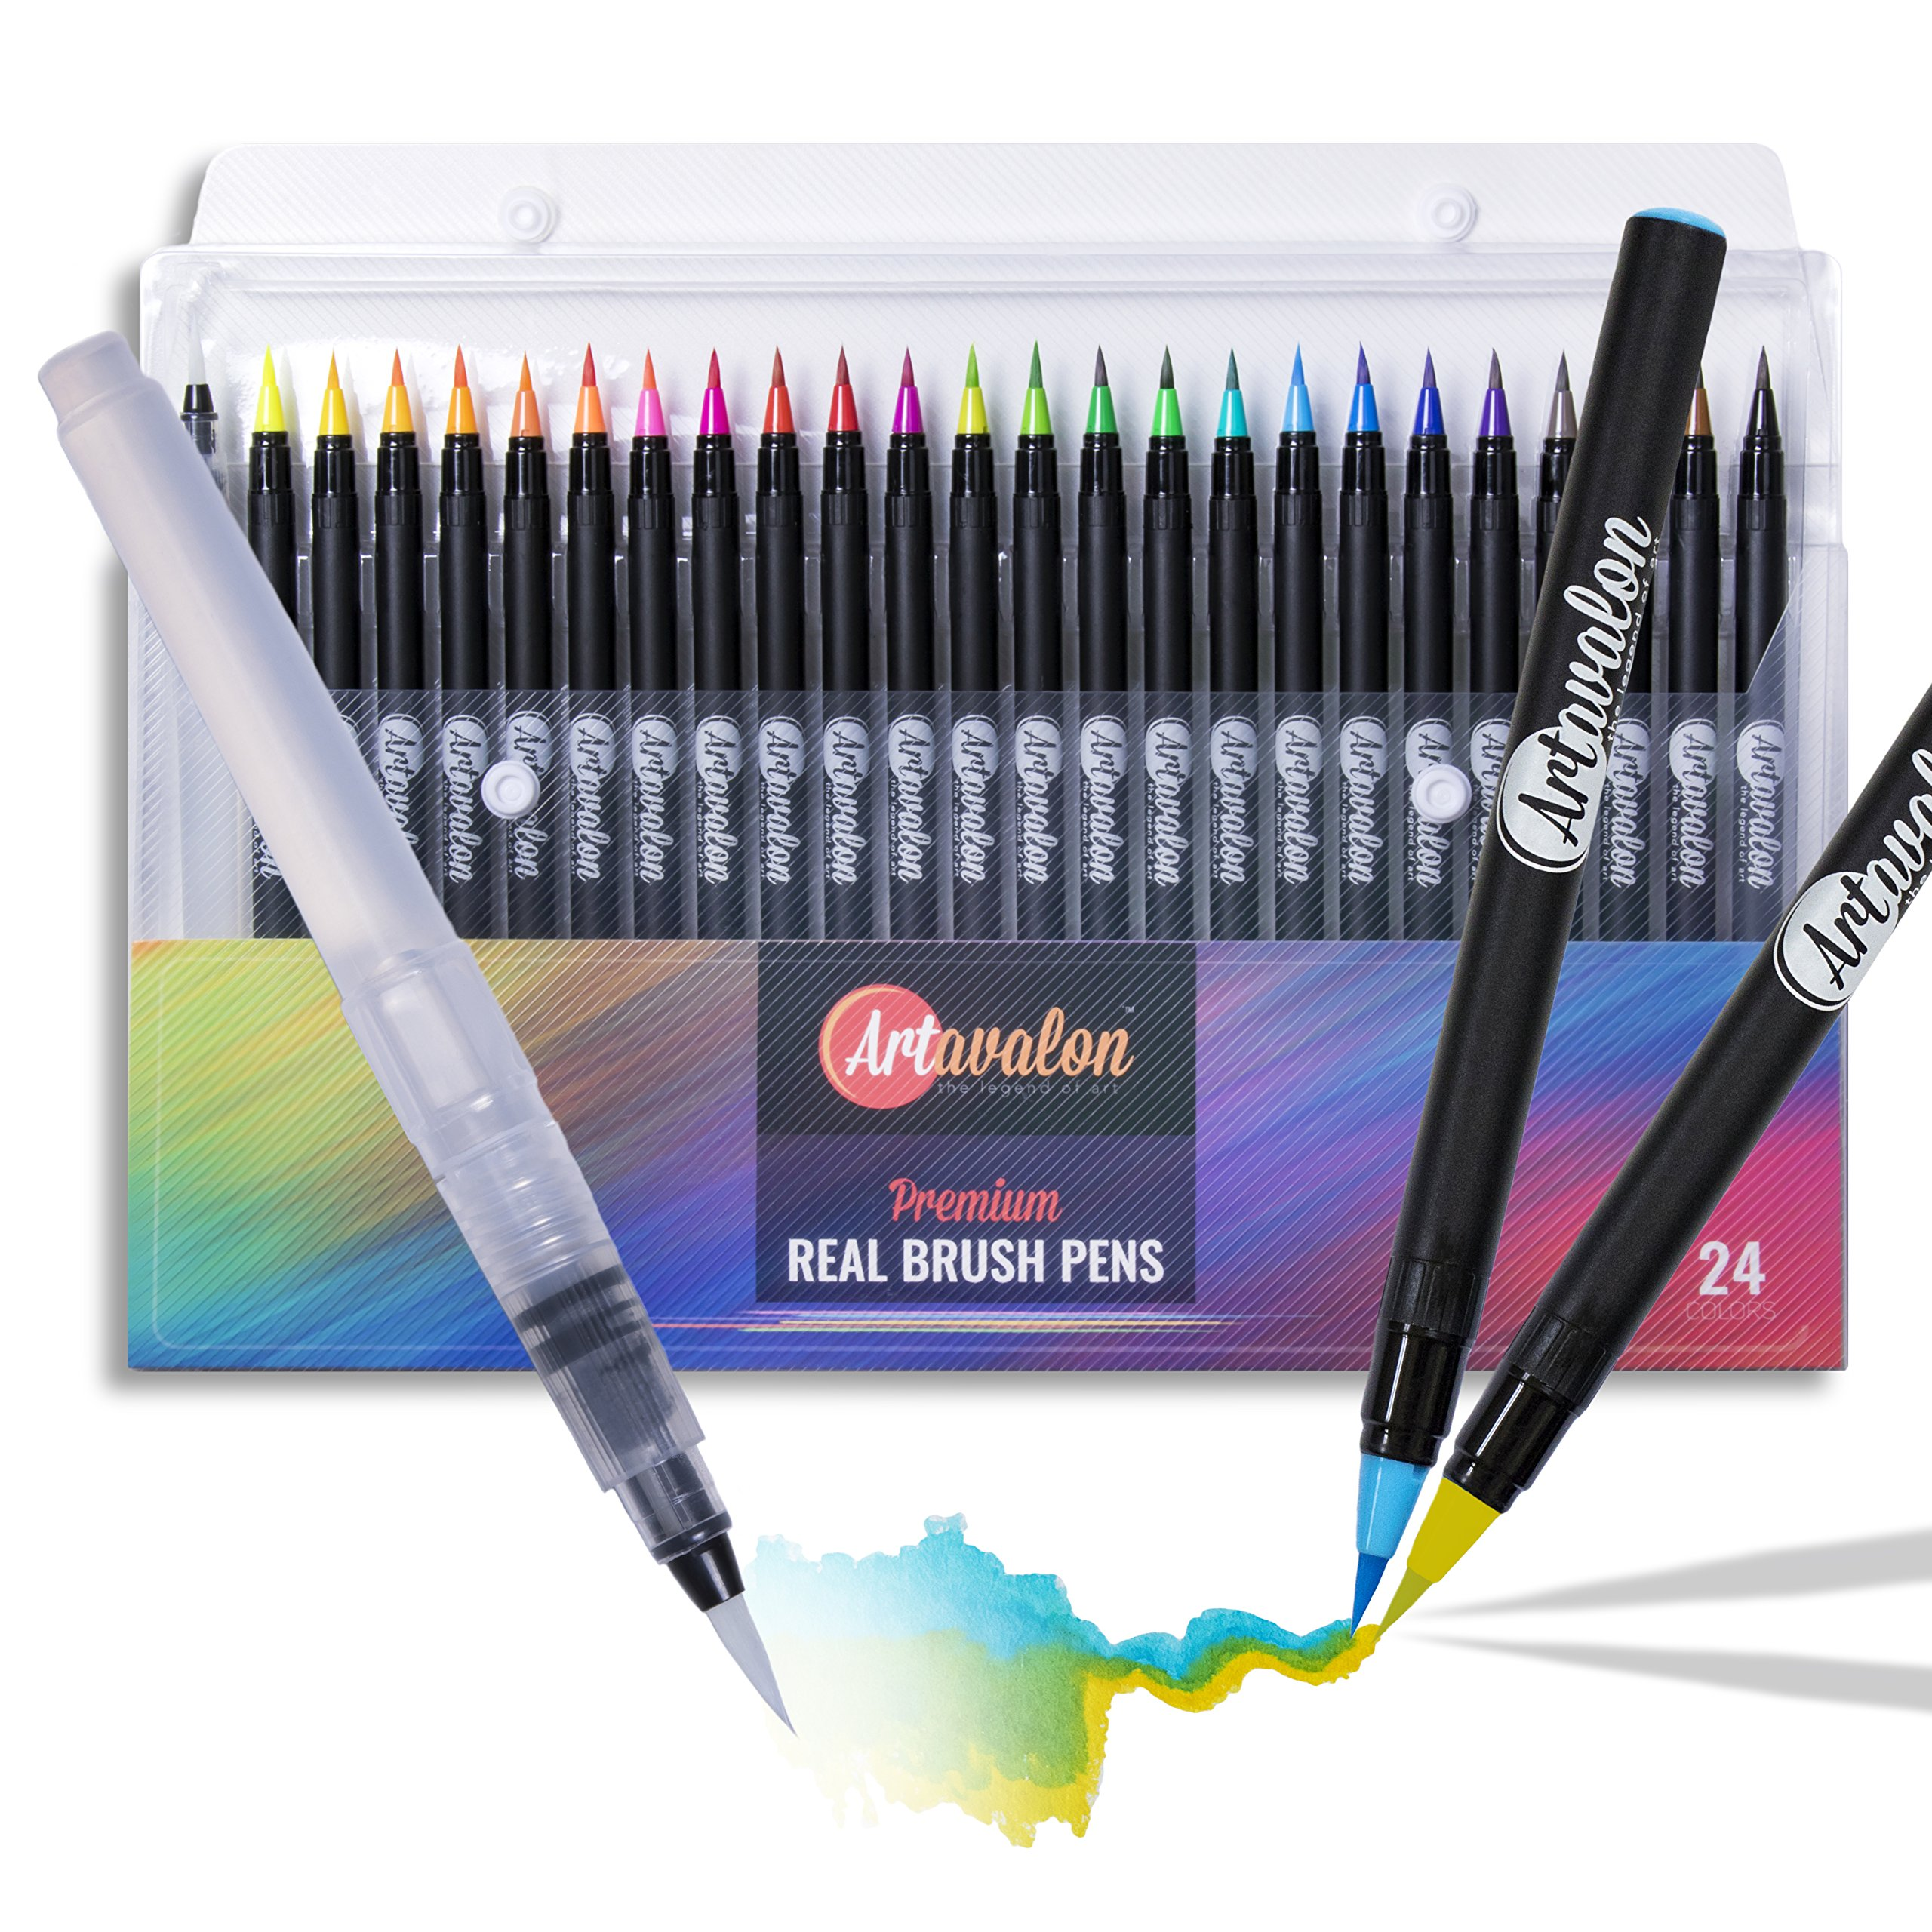 Watercolor Brush Pens - 24 Colors + 1 Refillable Pen - Flexible Tip + NonToxic • [Water Color Paint Markers Set for Artists/Adults/Kids, Real Art Coloring, Calligraphy Drawing, Paintbrush]